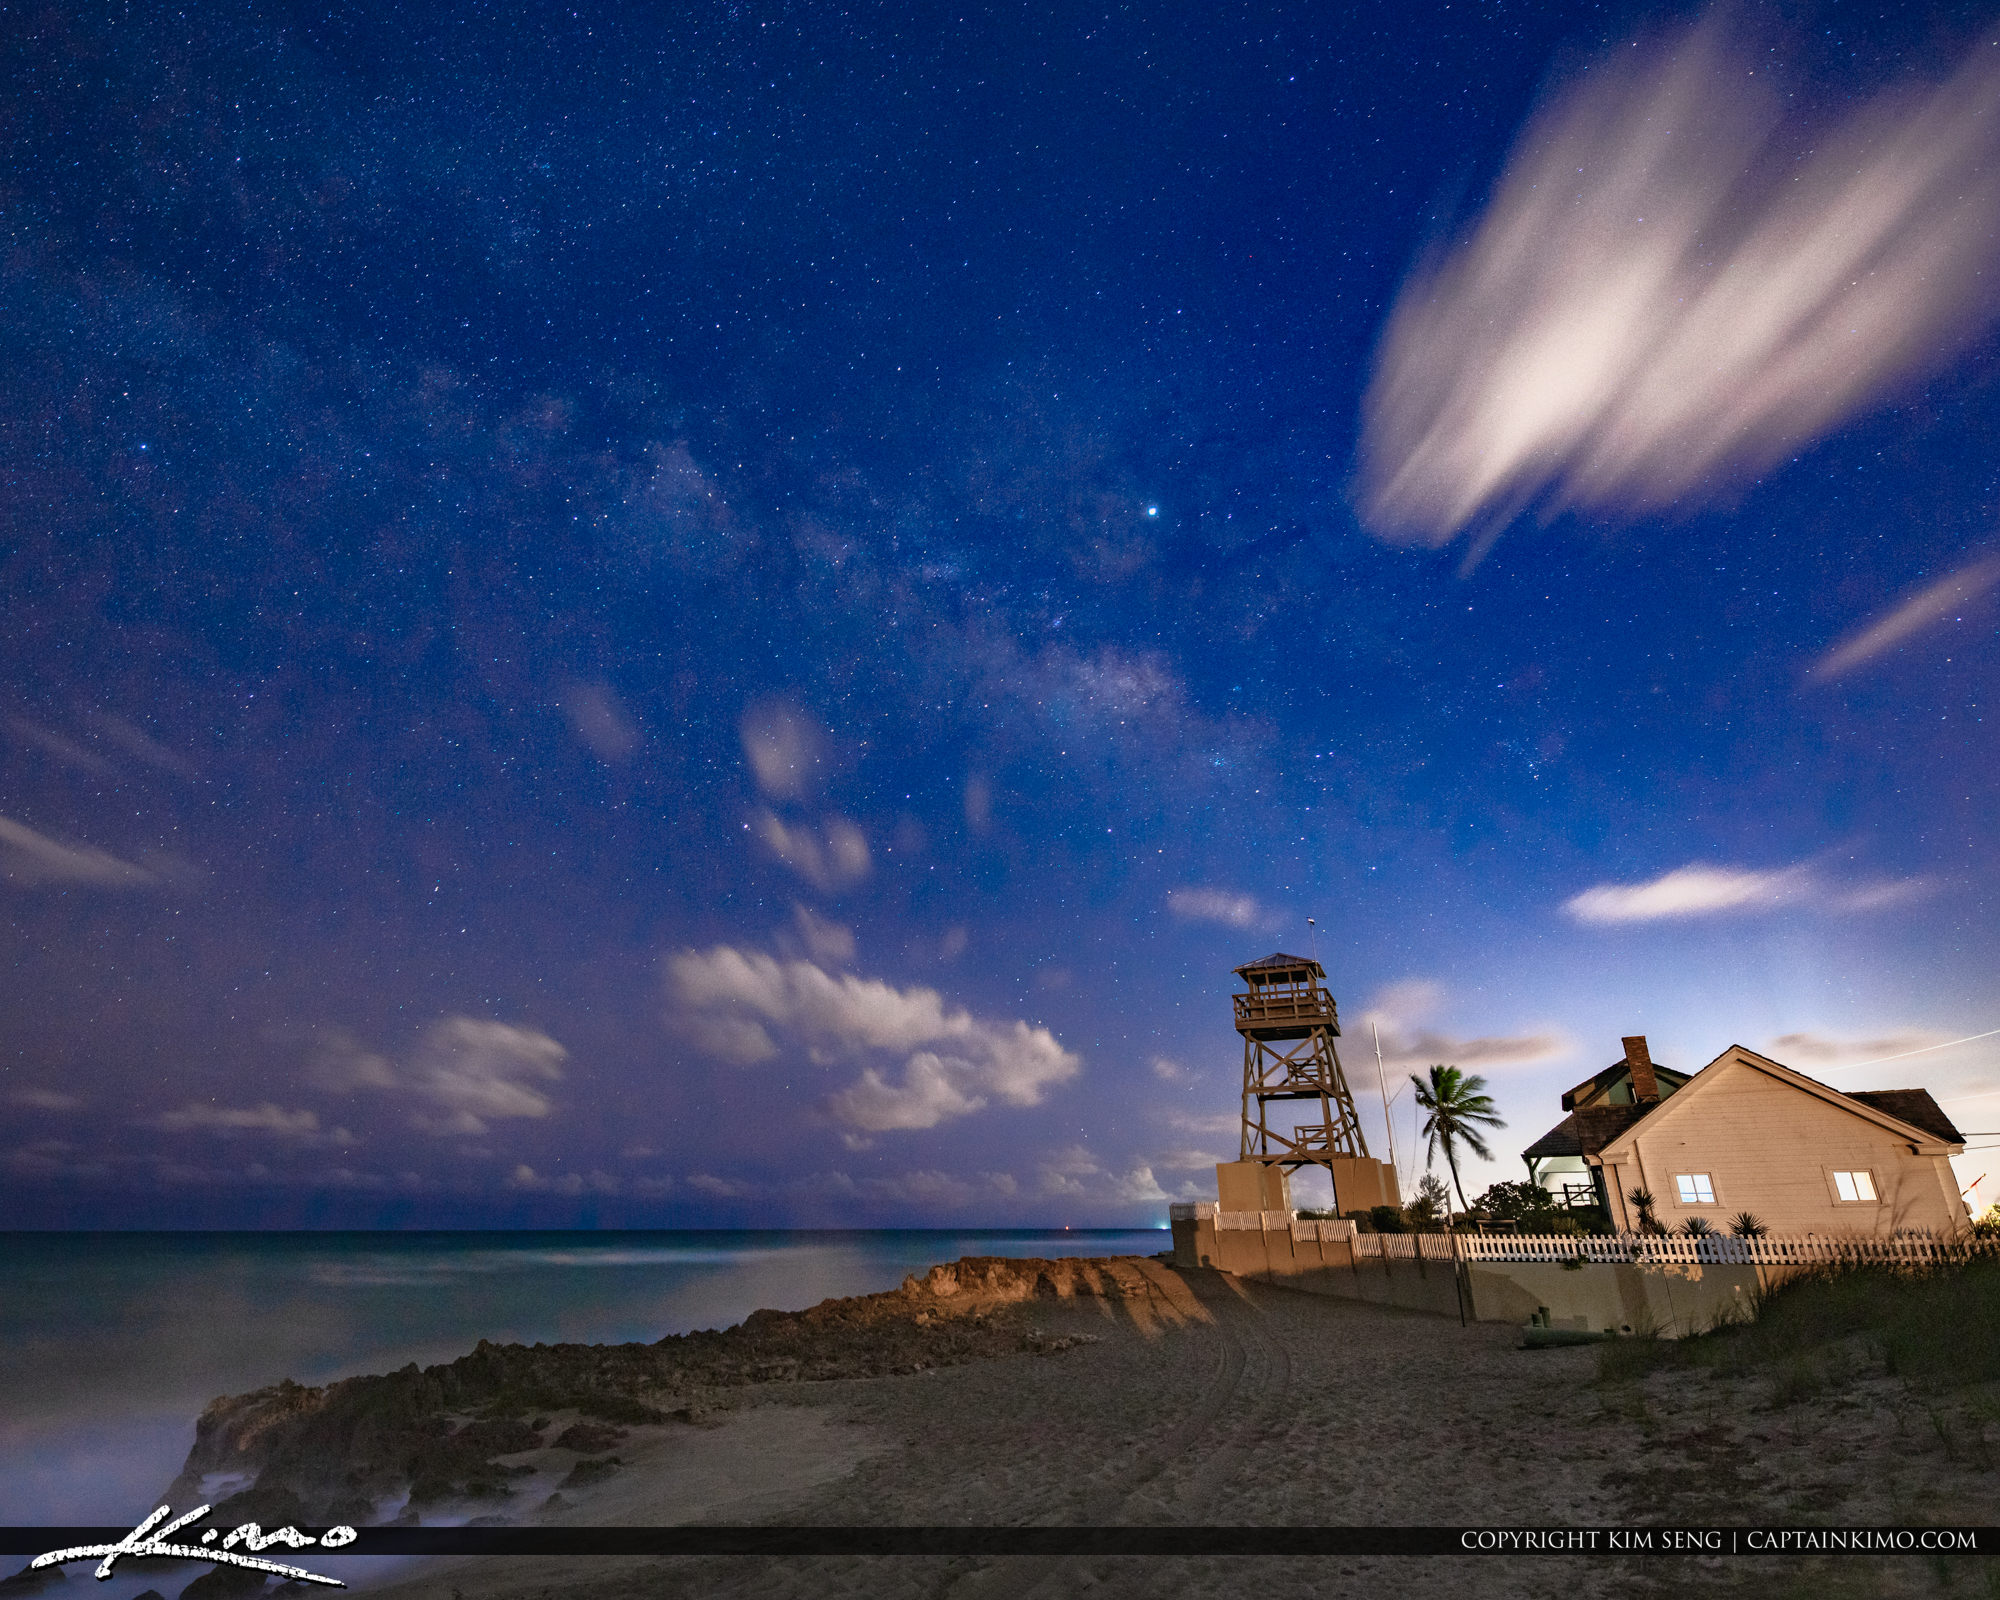 Milkyway Over the House of Refuge in Stuart Florida